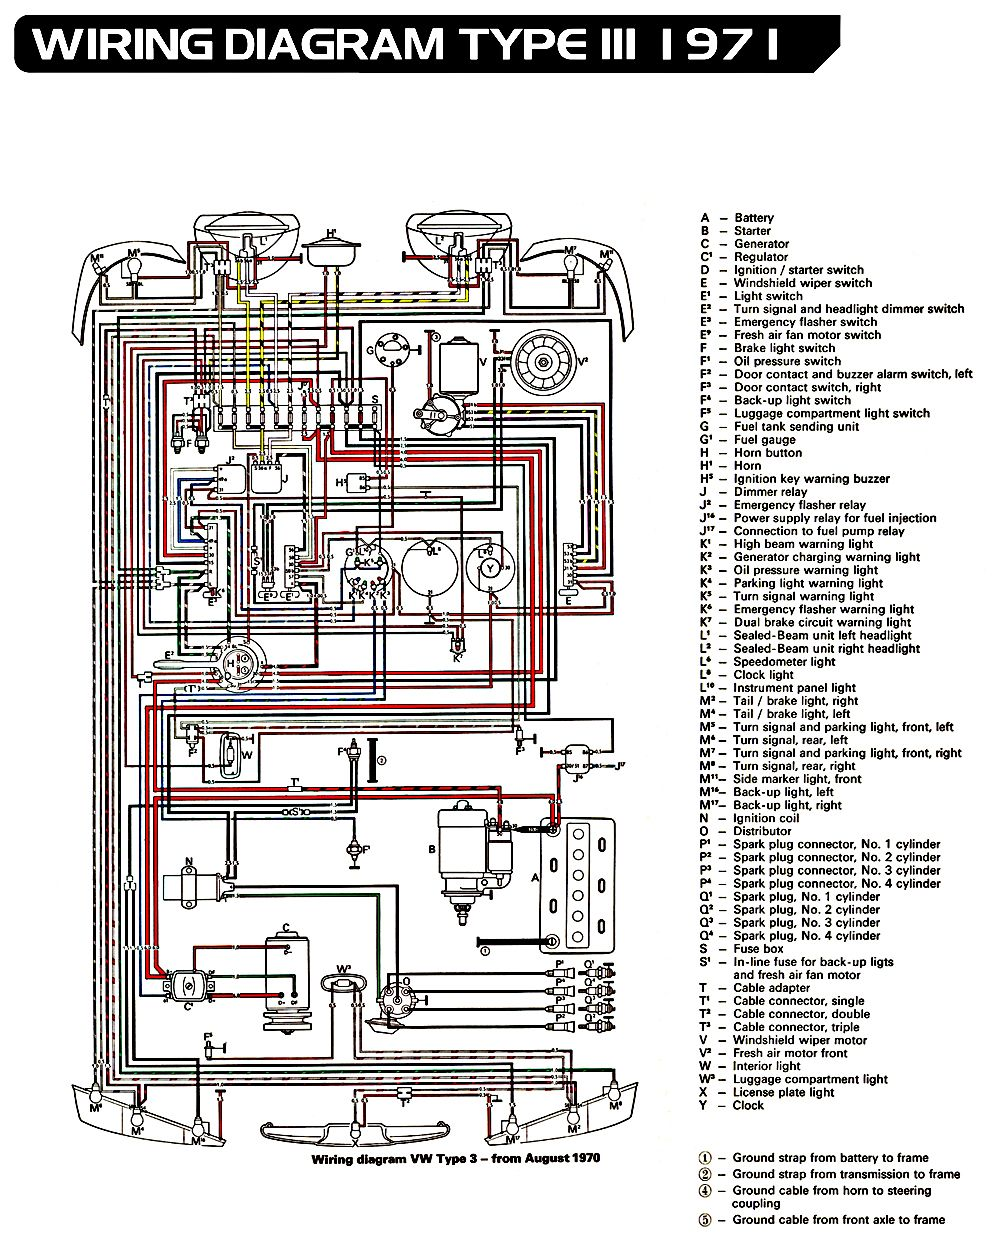 1971 type 3 vw wiring diagram so simple compared to a modern ecu wiring diagram 1970 vw squareback [ 1000 x 1252 Pixel ]